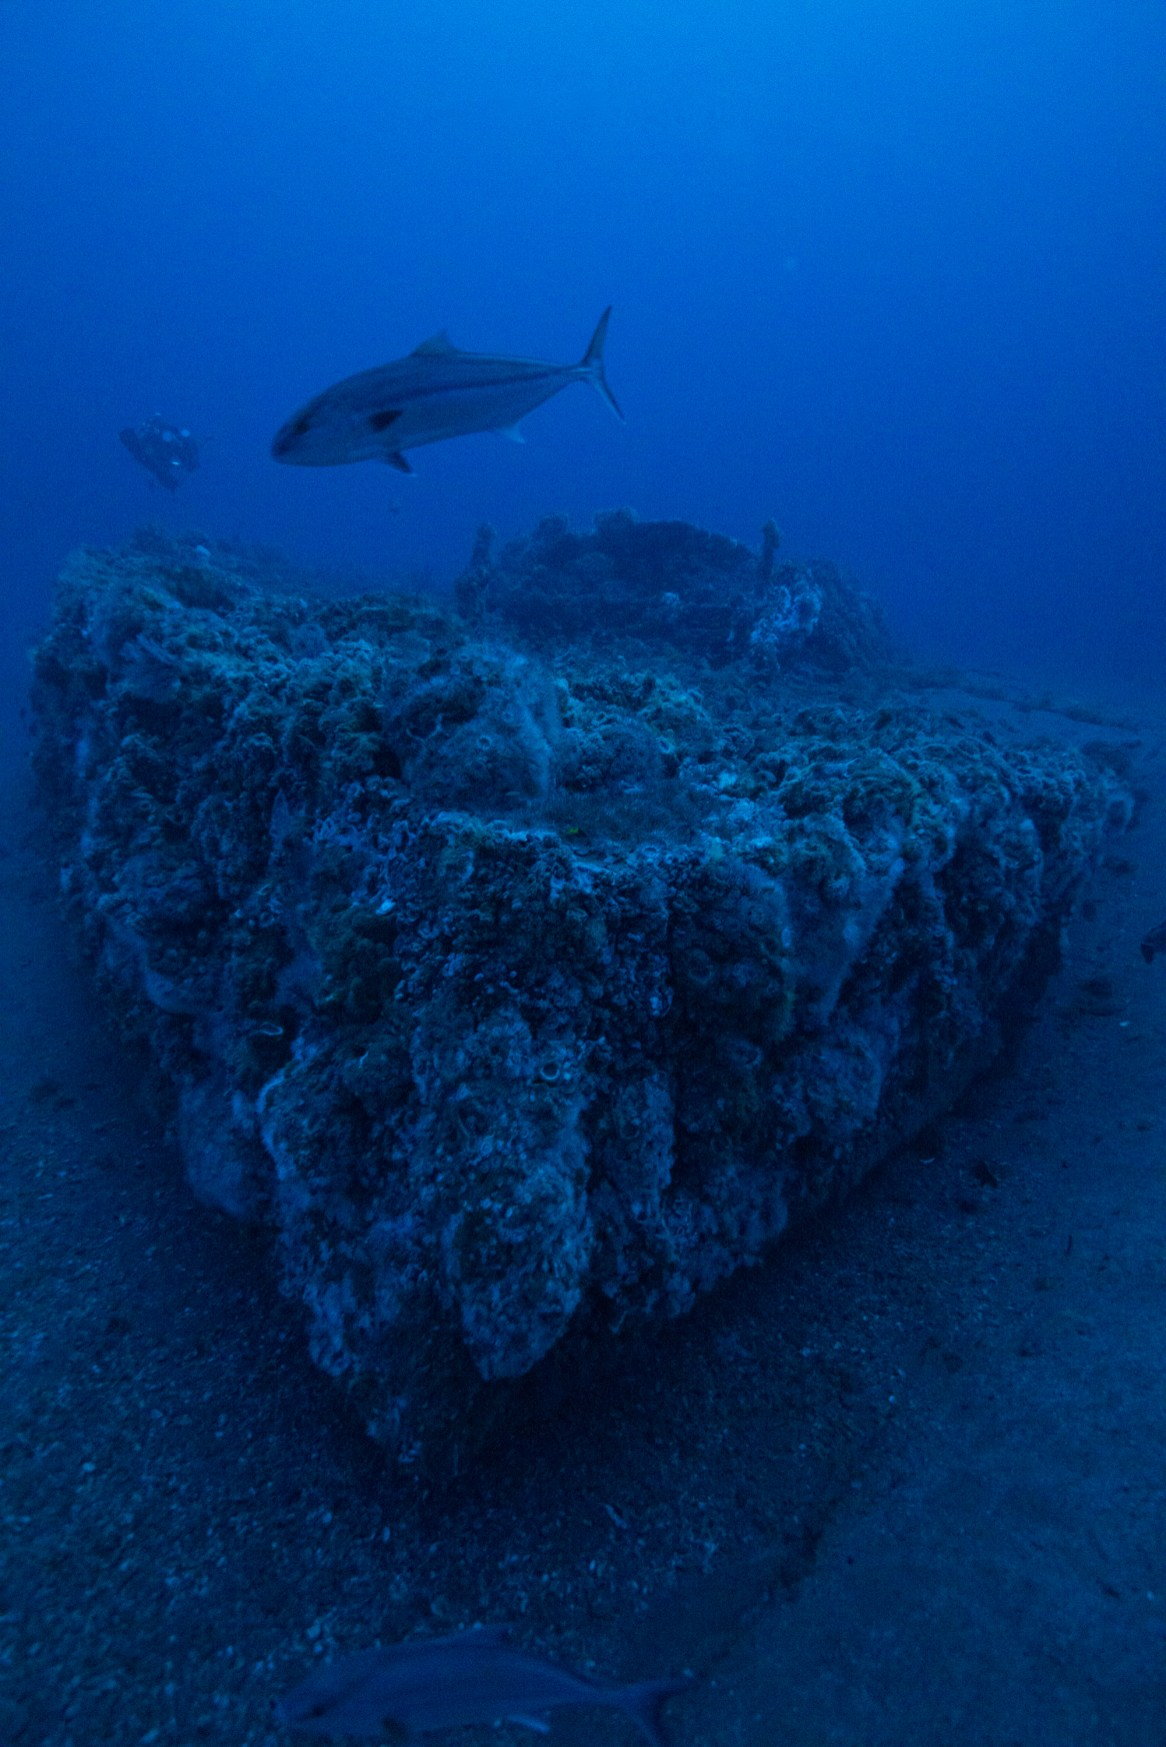 USS Monitor as photographed in 2015. (Photo credit: NOAA)